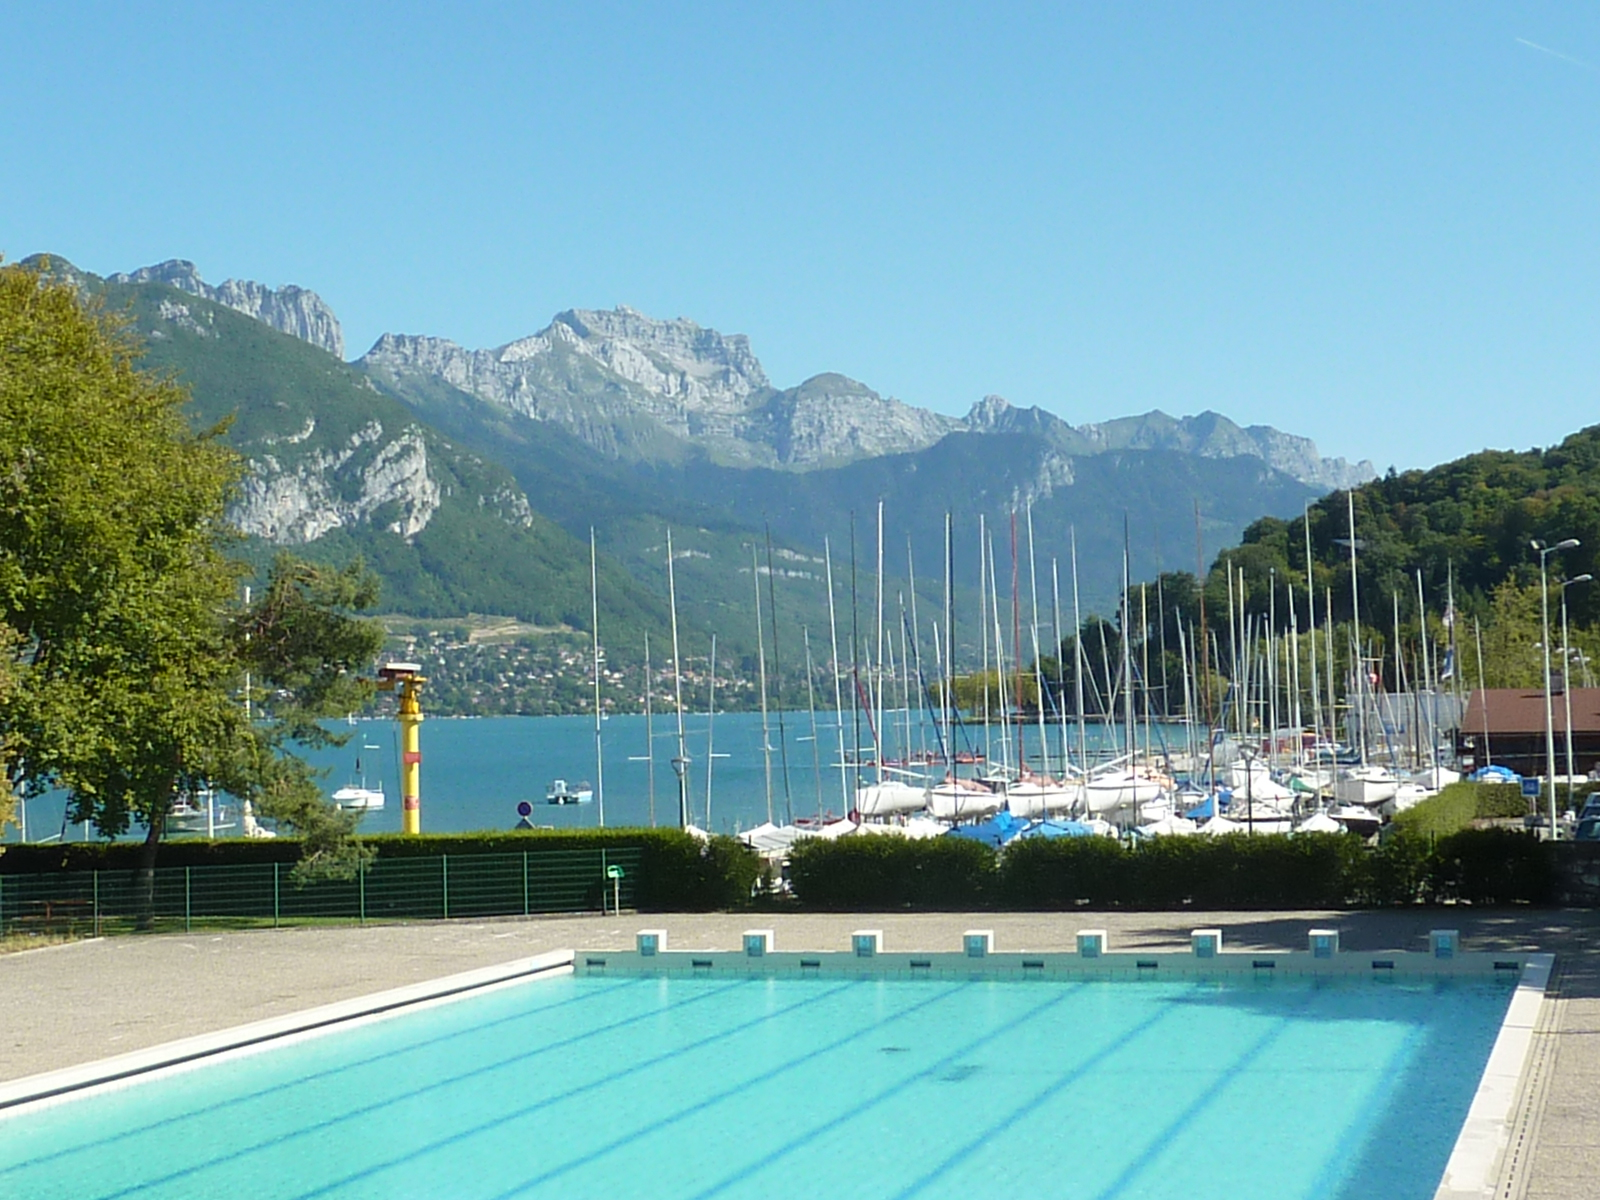 Usagers des piscines agglo annecy up2a for Piscine ile bleue seynod